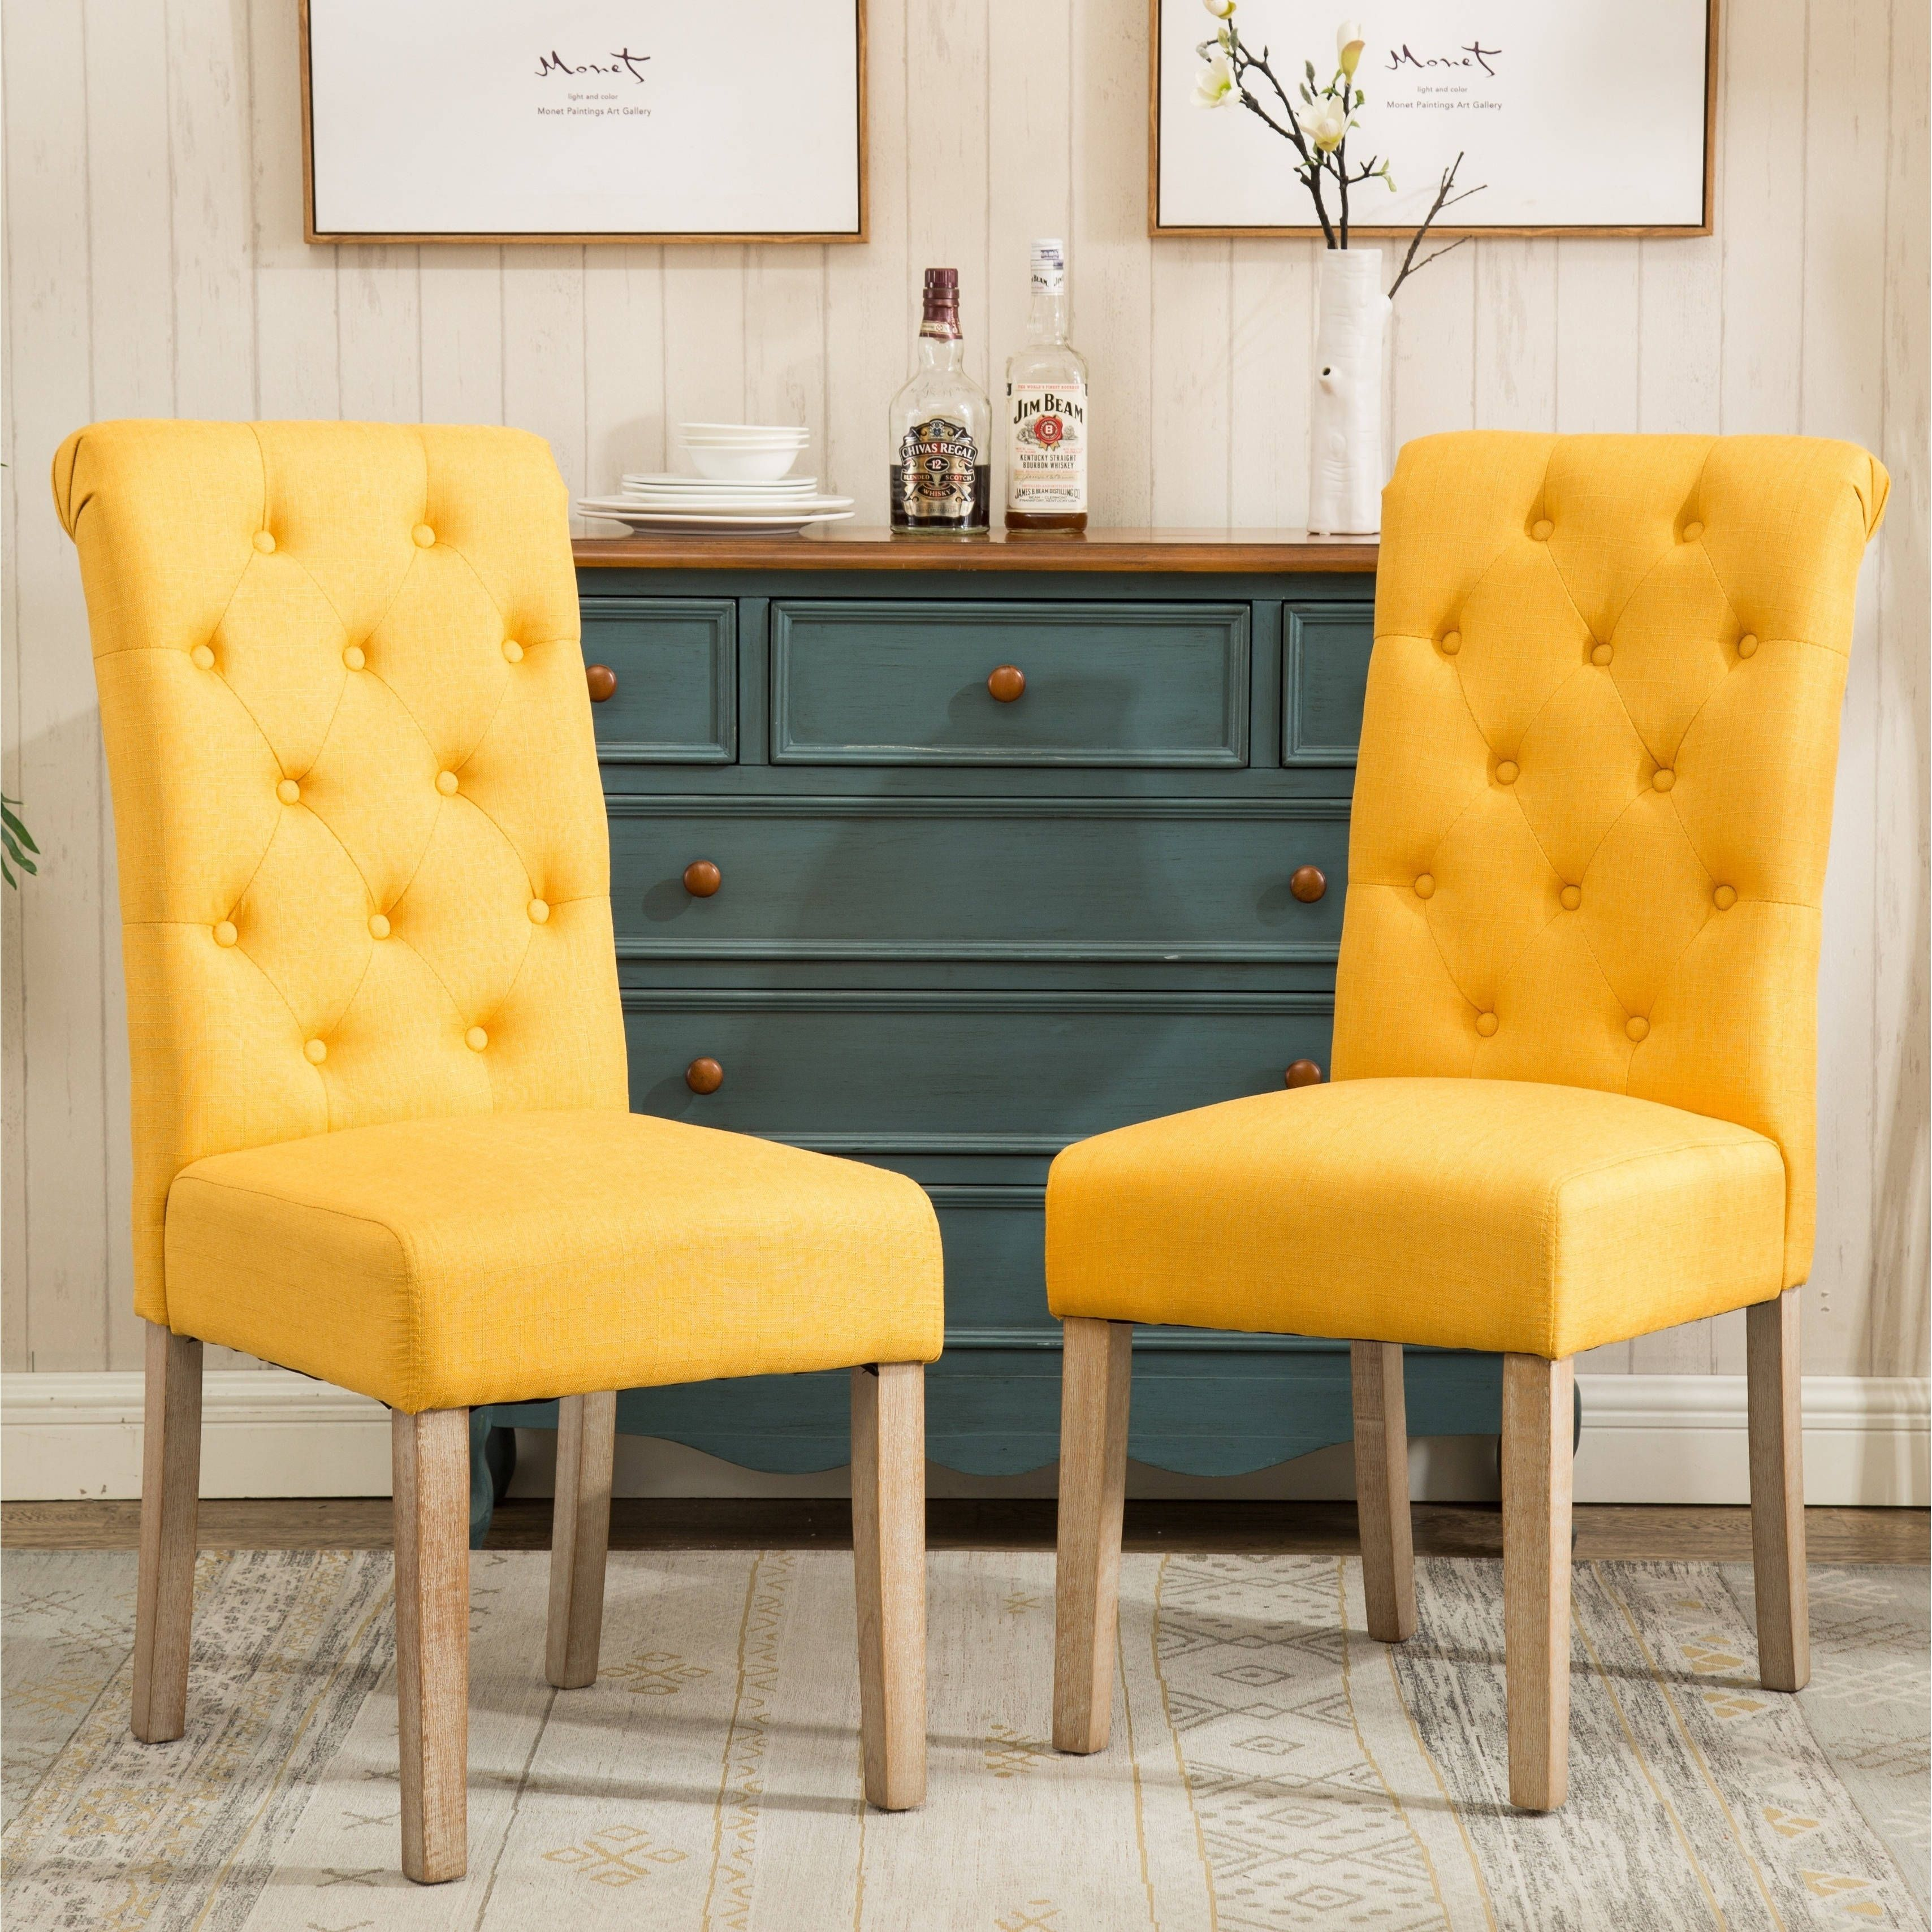 habit solid wood tufted parsons dining chairs set of 2 yellow fabric - Parsons Dining Chairs